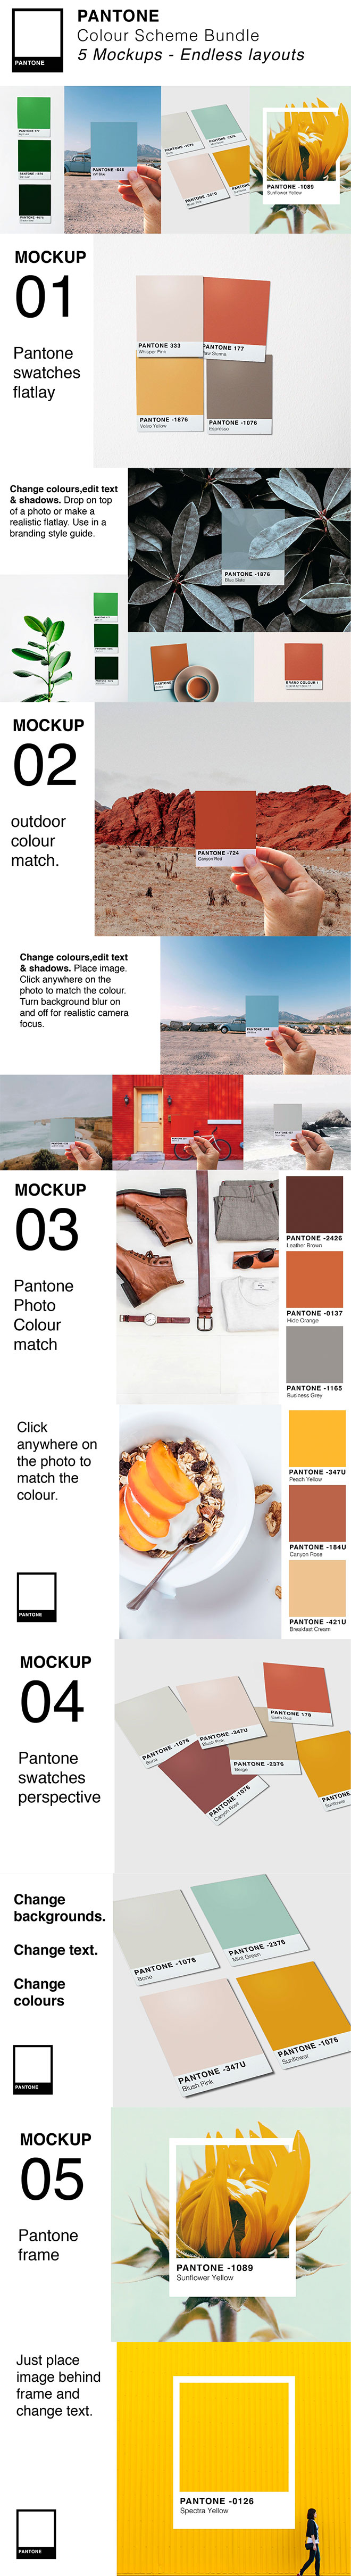 Pantone Colour Swatch Mockups for Premium Members